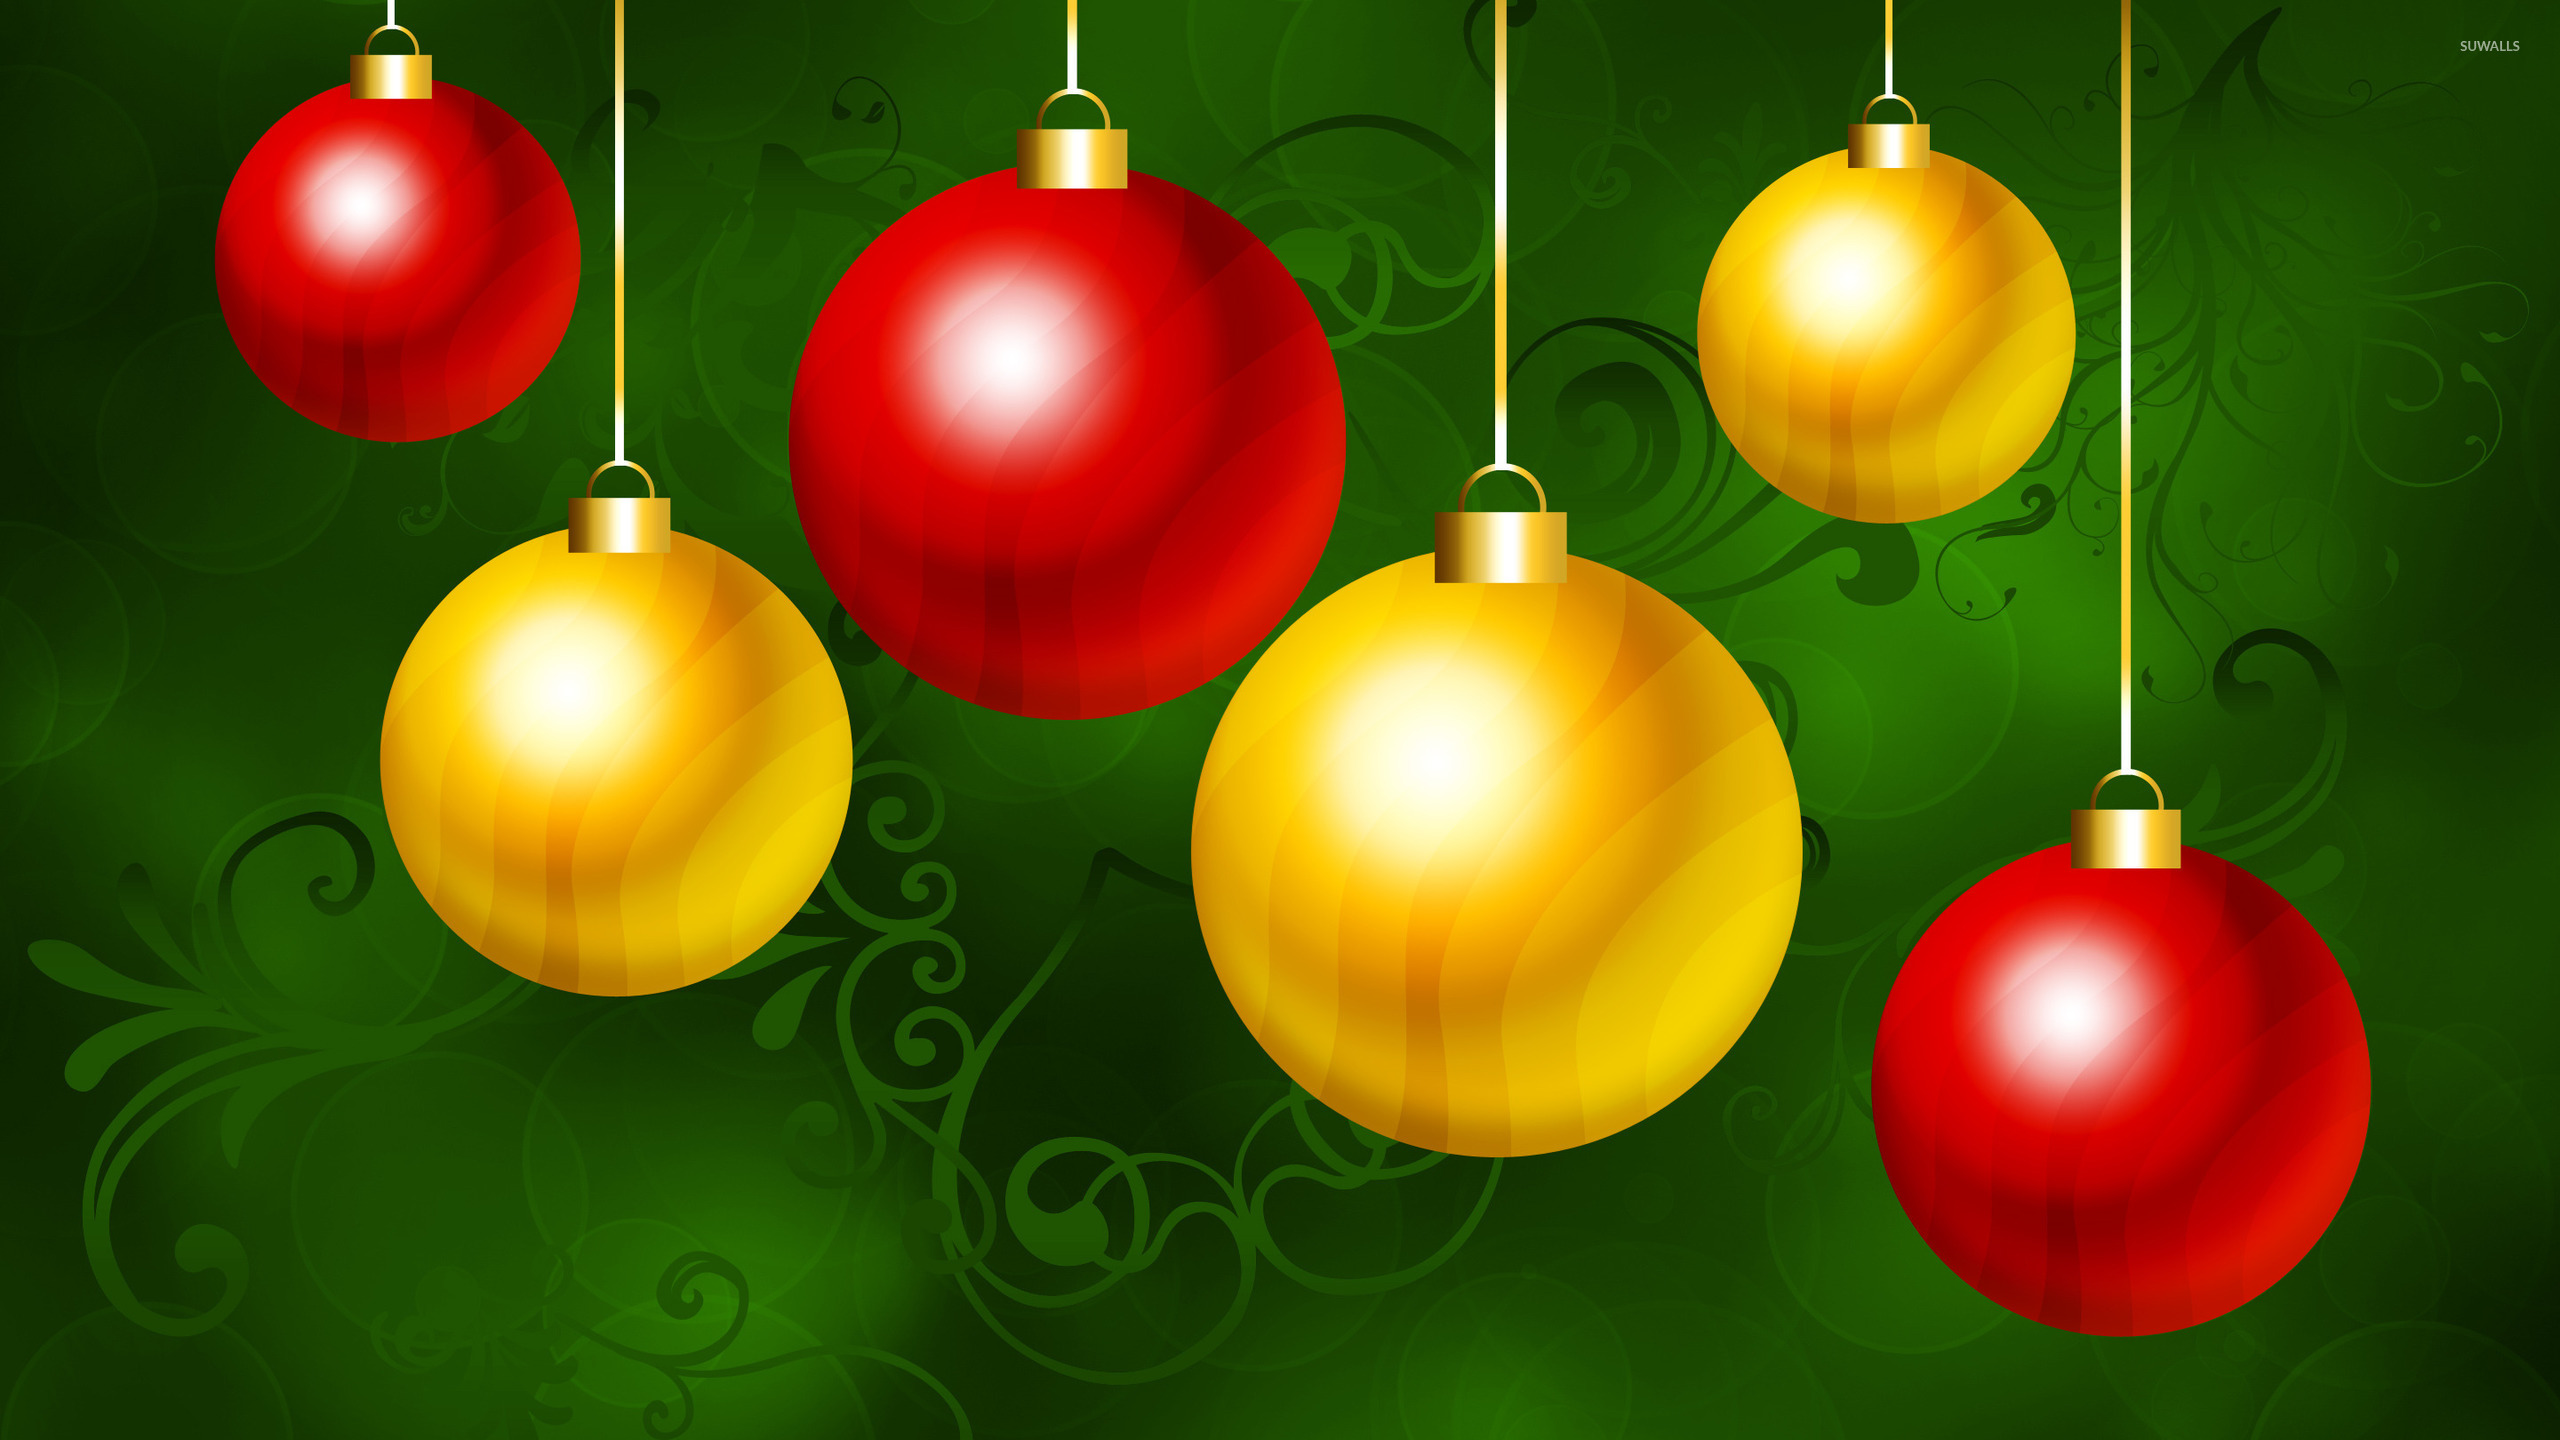 Christmas ornaments 3 wallpaper holiday wallpapers for Holiday christmas ornaments